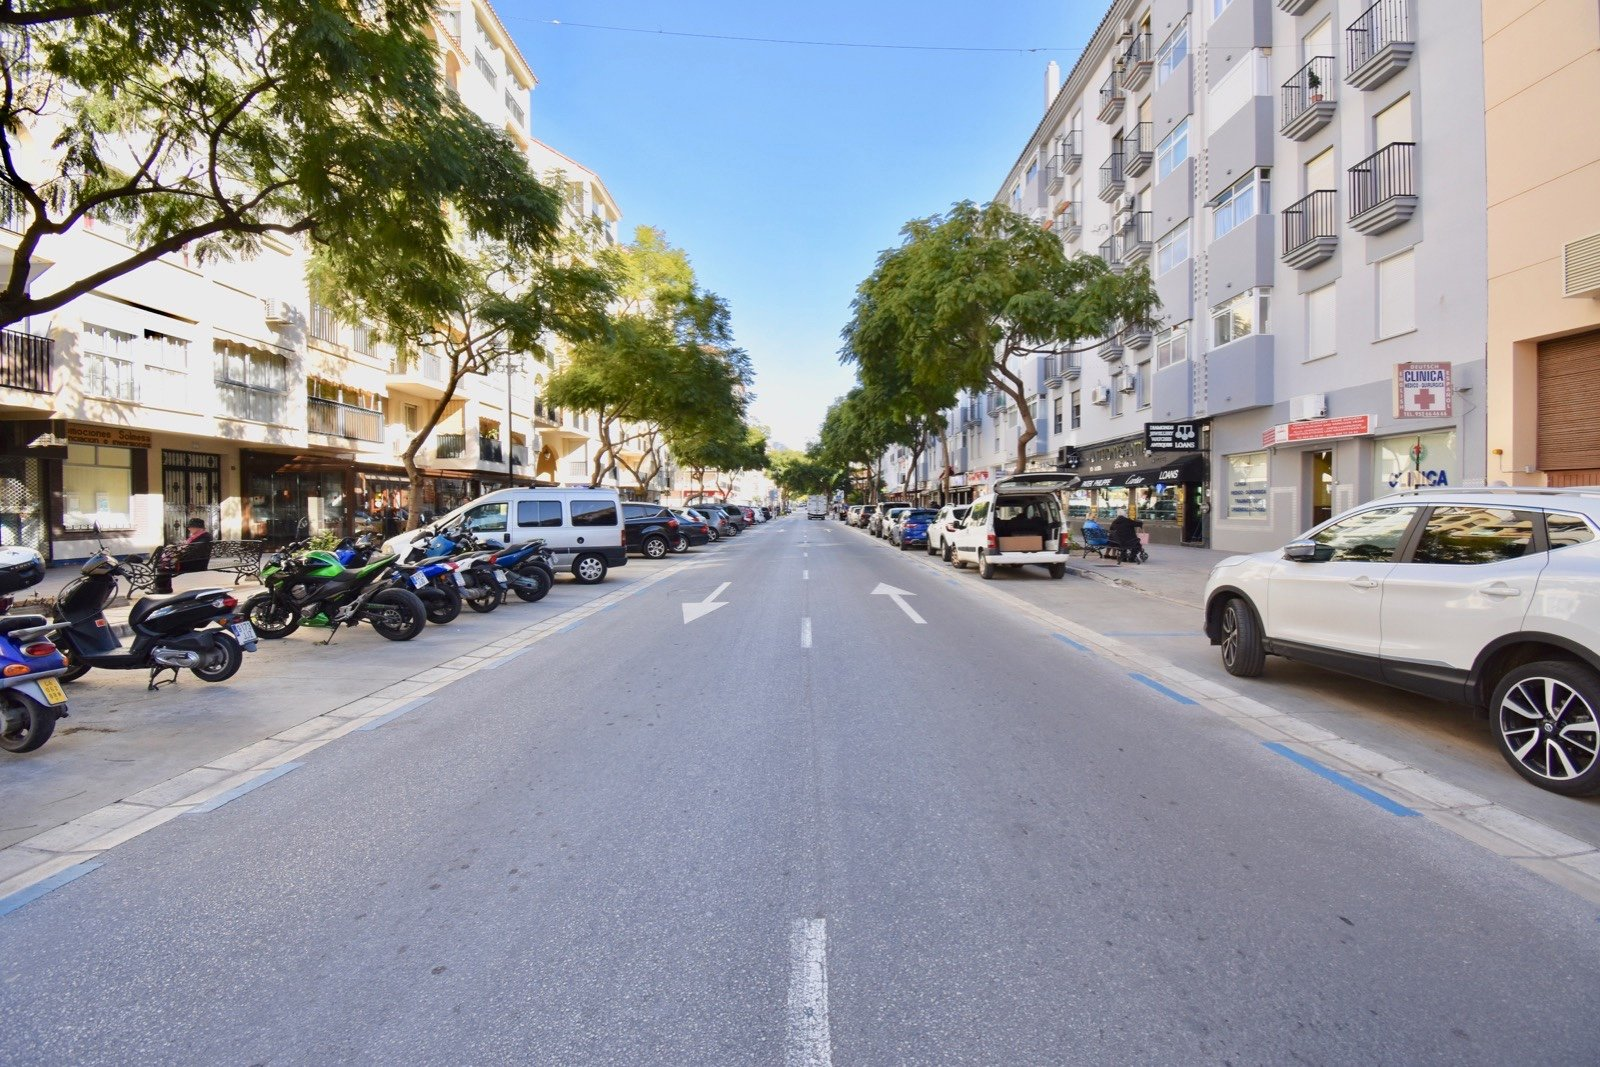 Commercial for sale in Fuengirola - Málaga